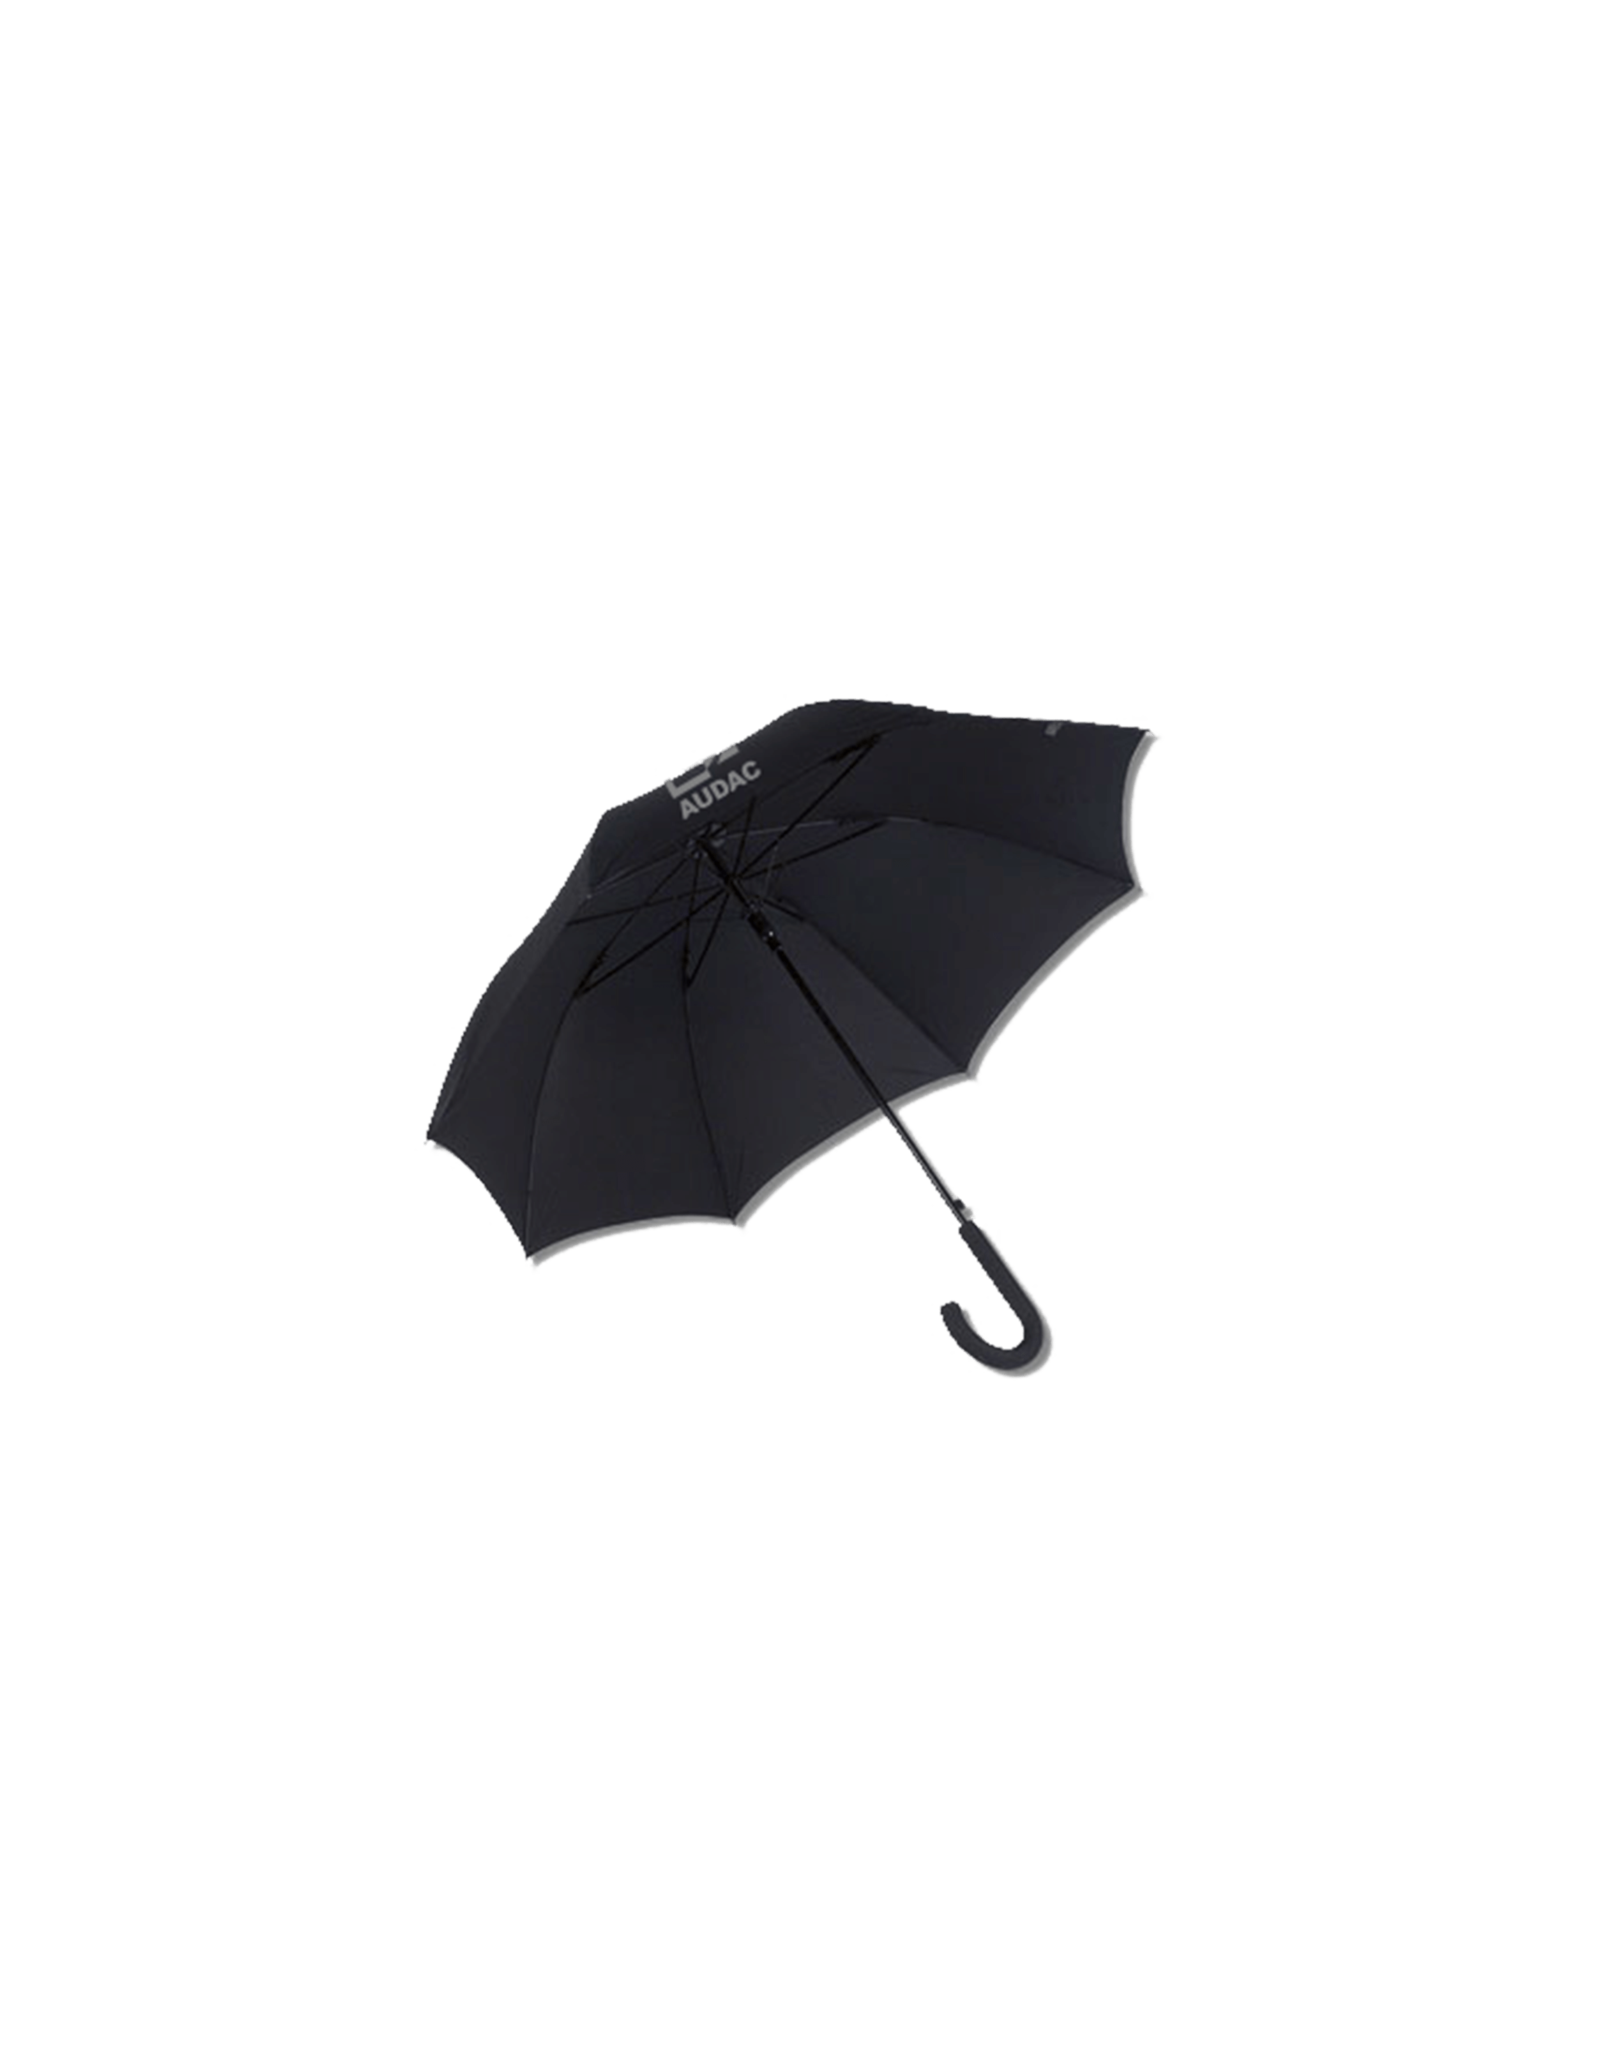 Audac AUDAC umbrella